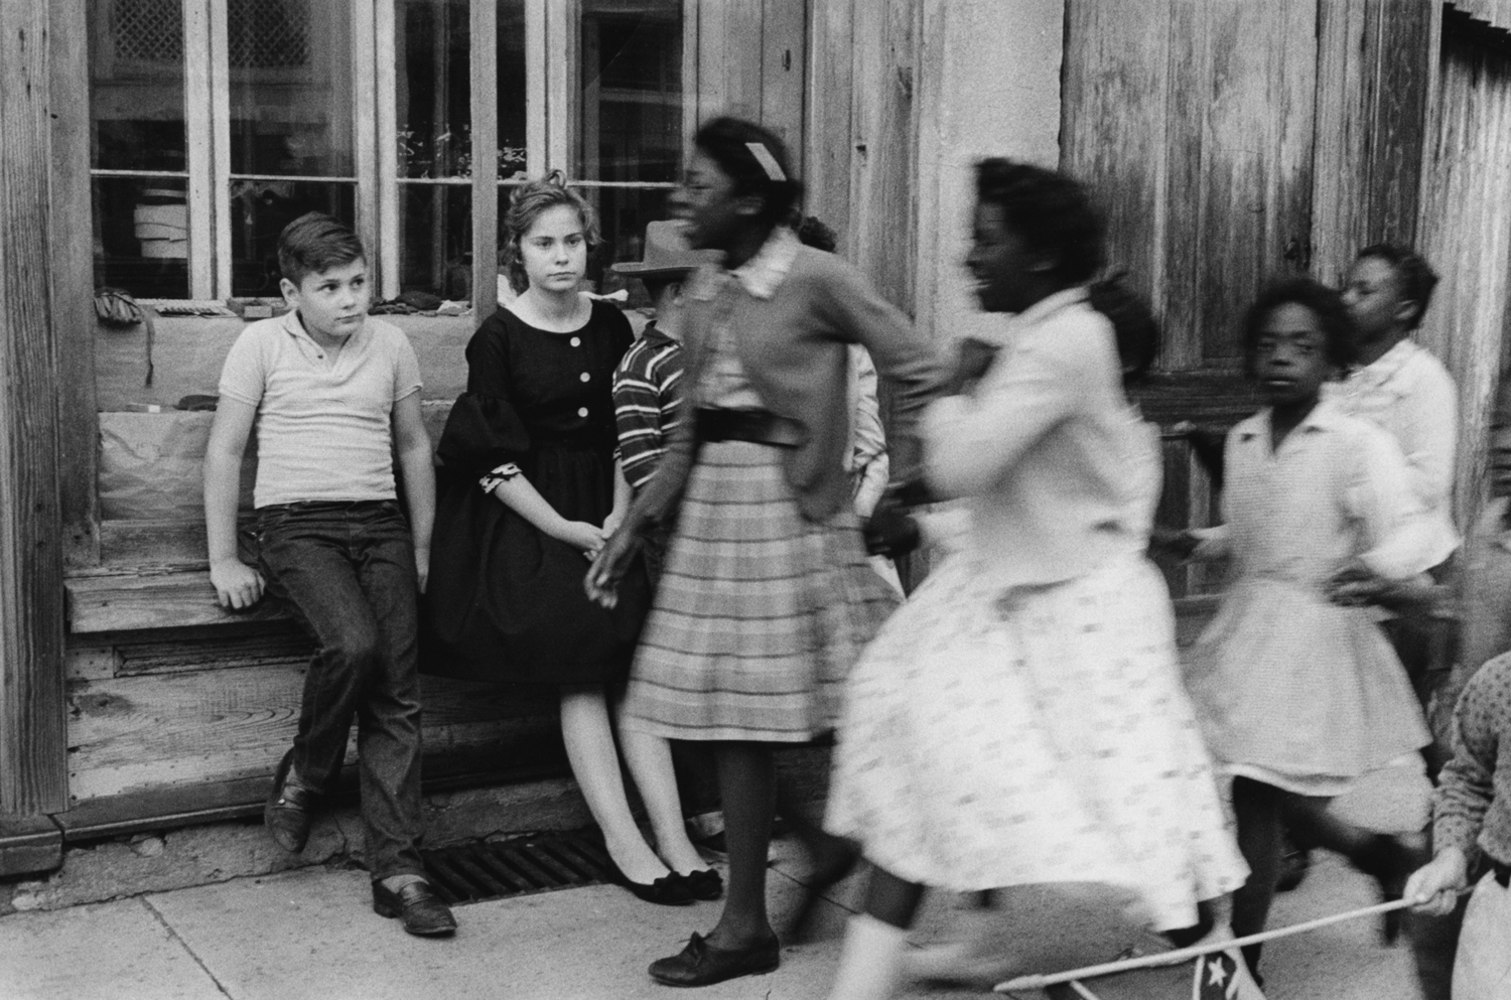 Powerful images capture struggle for civil rights